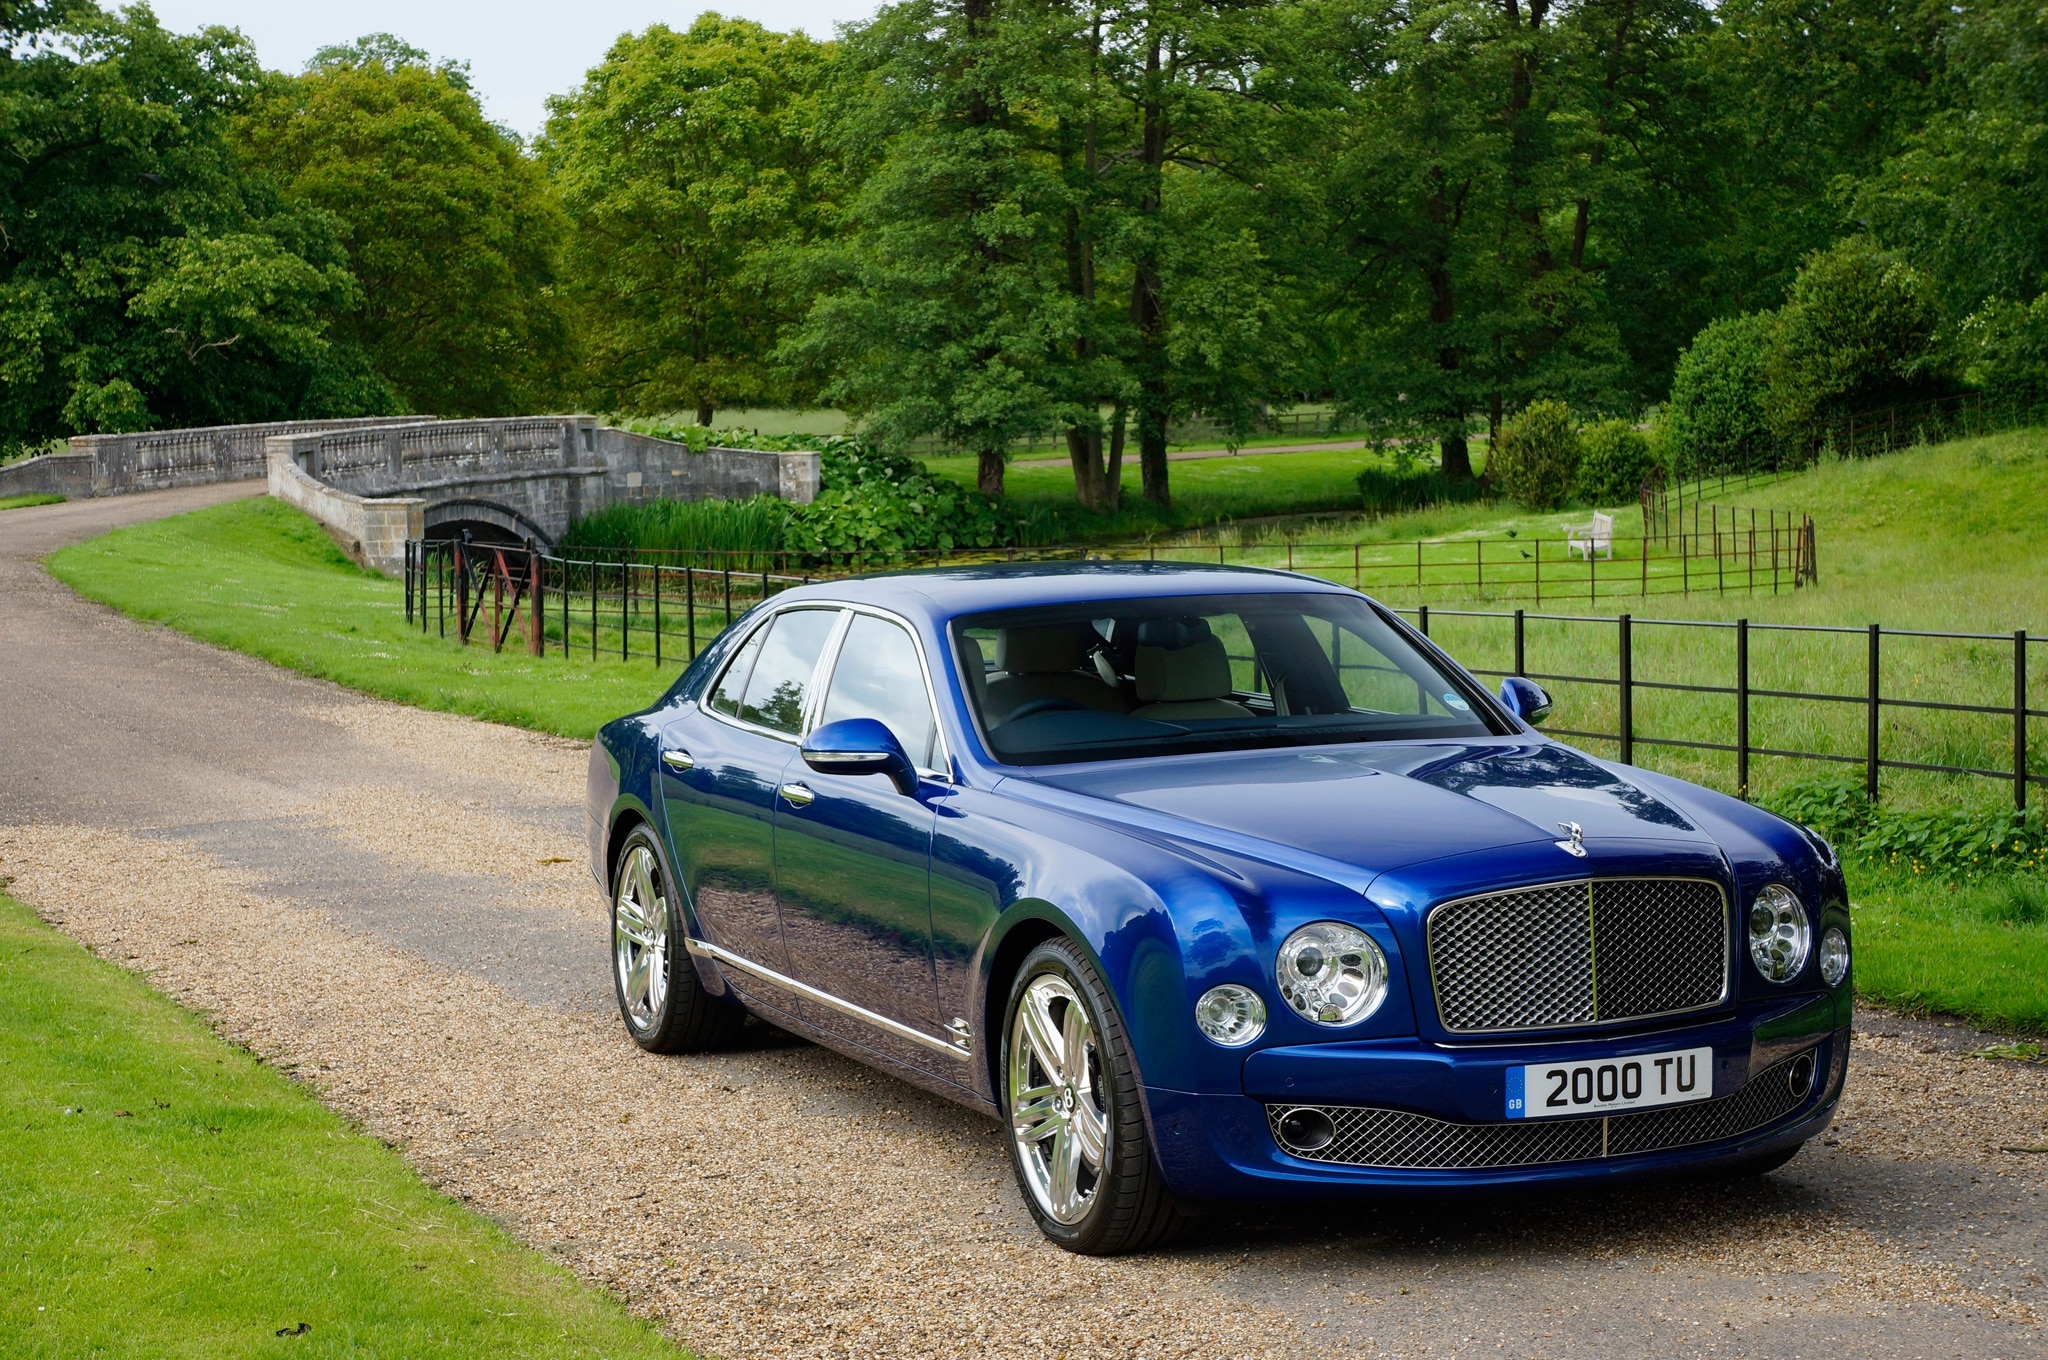 Bentley Mulsanne Le Mans Limited Edition Revealed